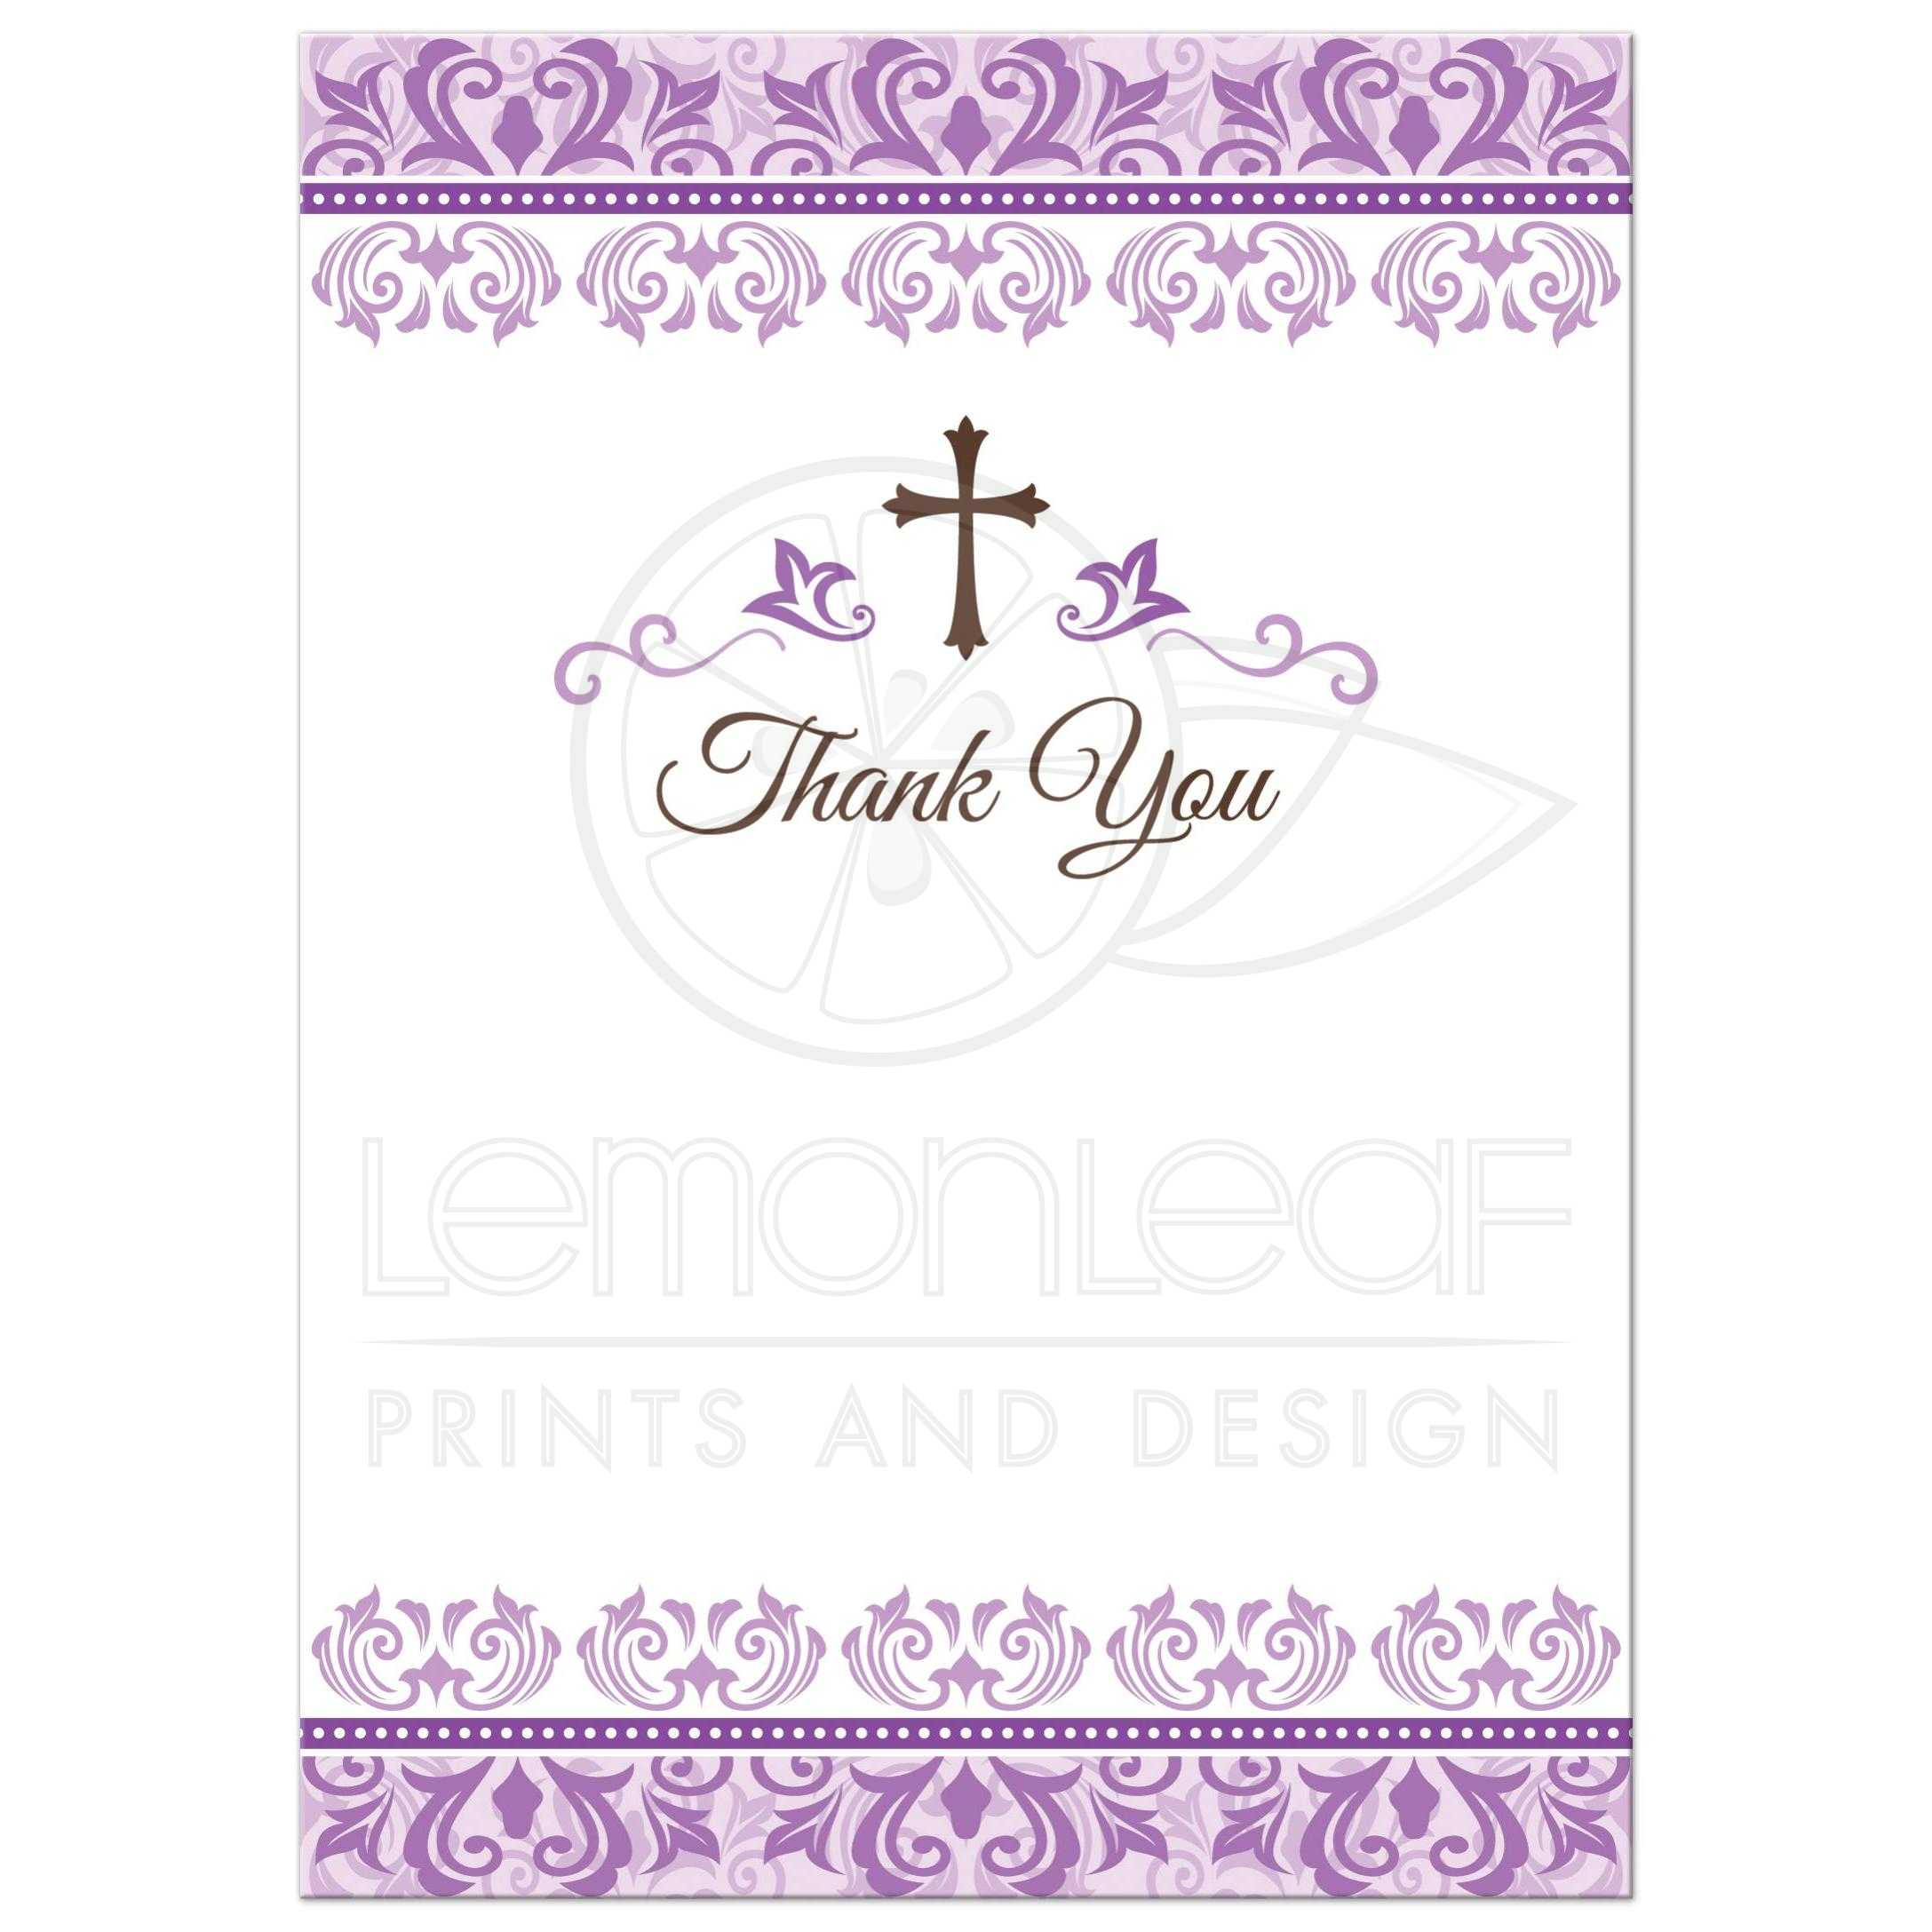 First Communion Thank You Notes With Purple Ornate Damask Borders And Brown Cross